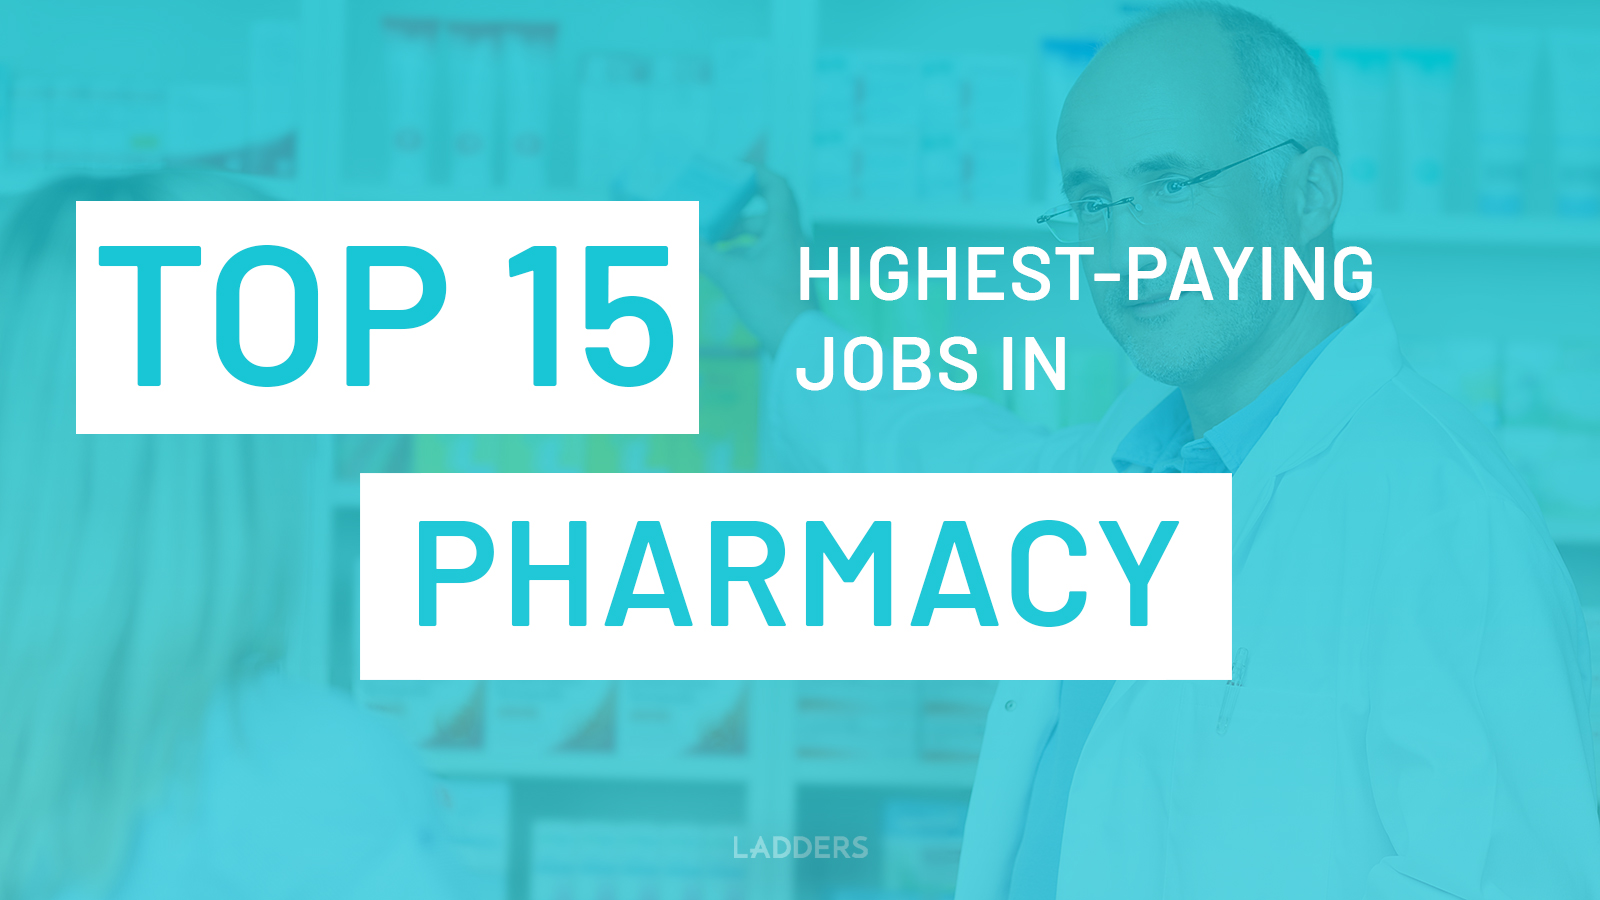 The Top 15 highest-paying jobs in the pharmacy industry